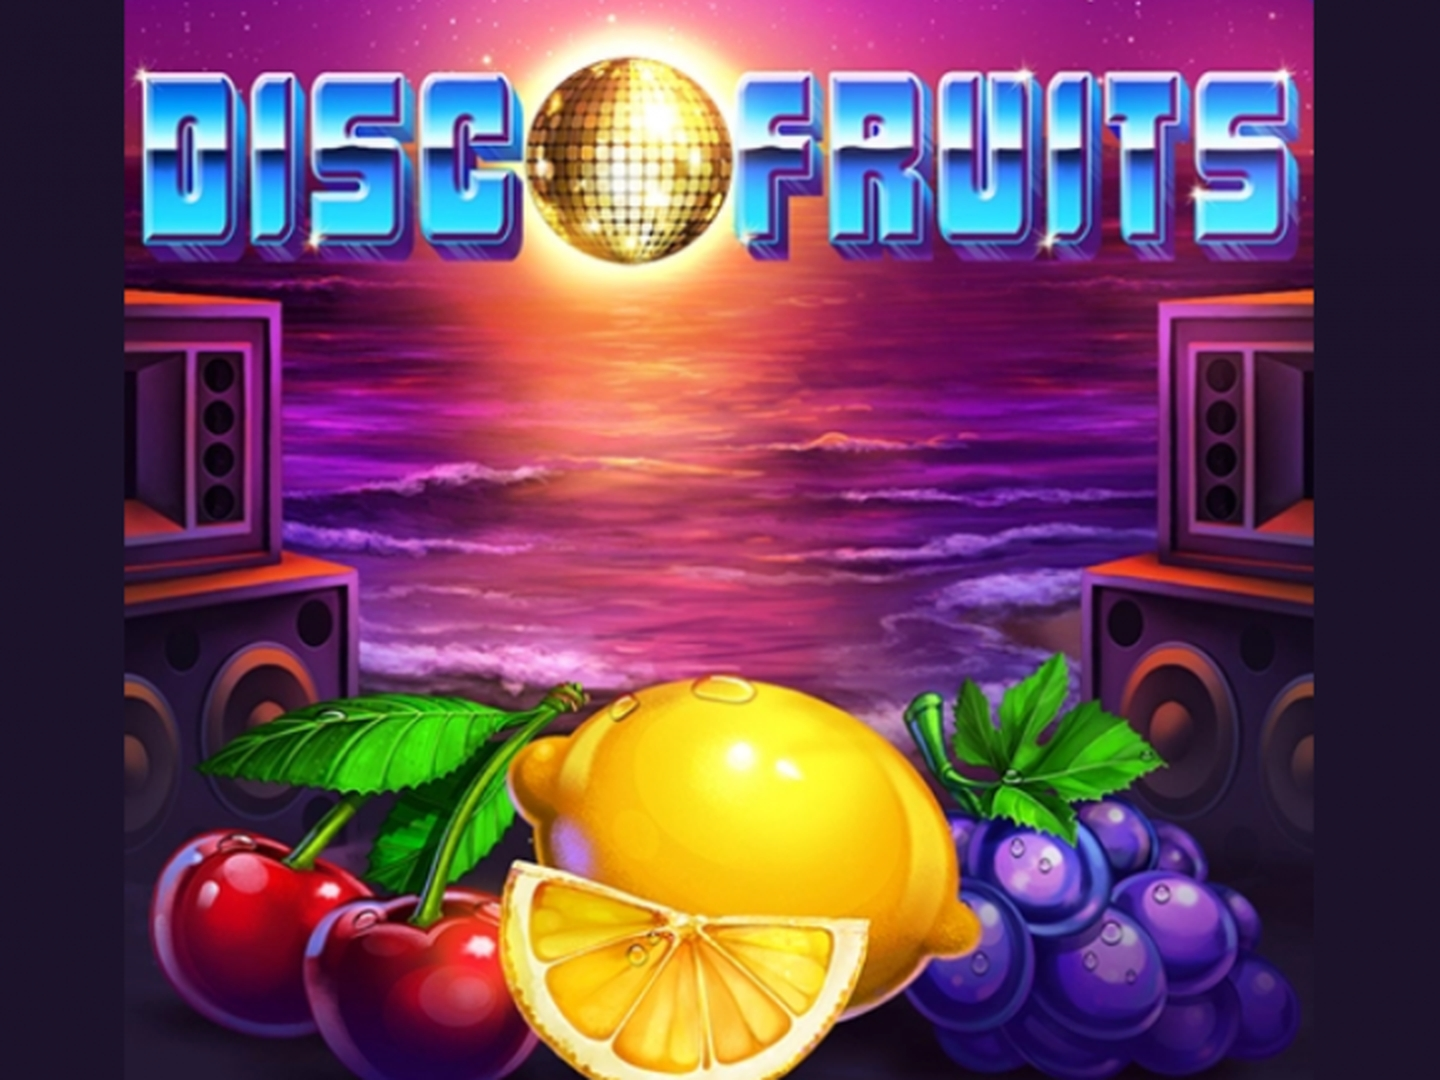 The Disco Fruits (NetGame) Online Slot Demo Game by NetGame